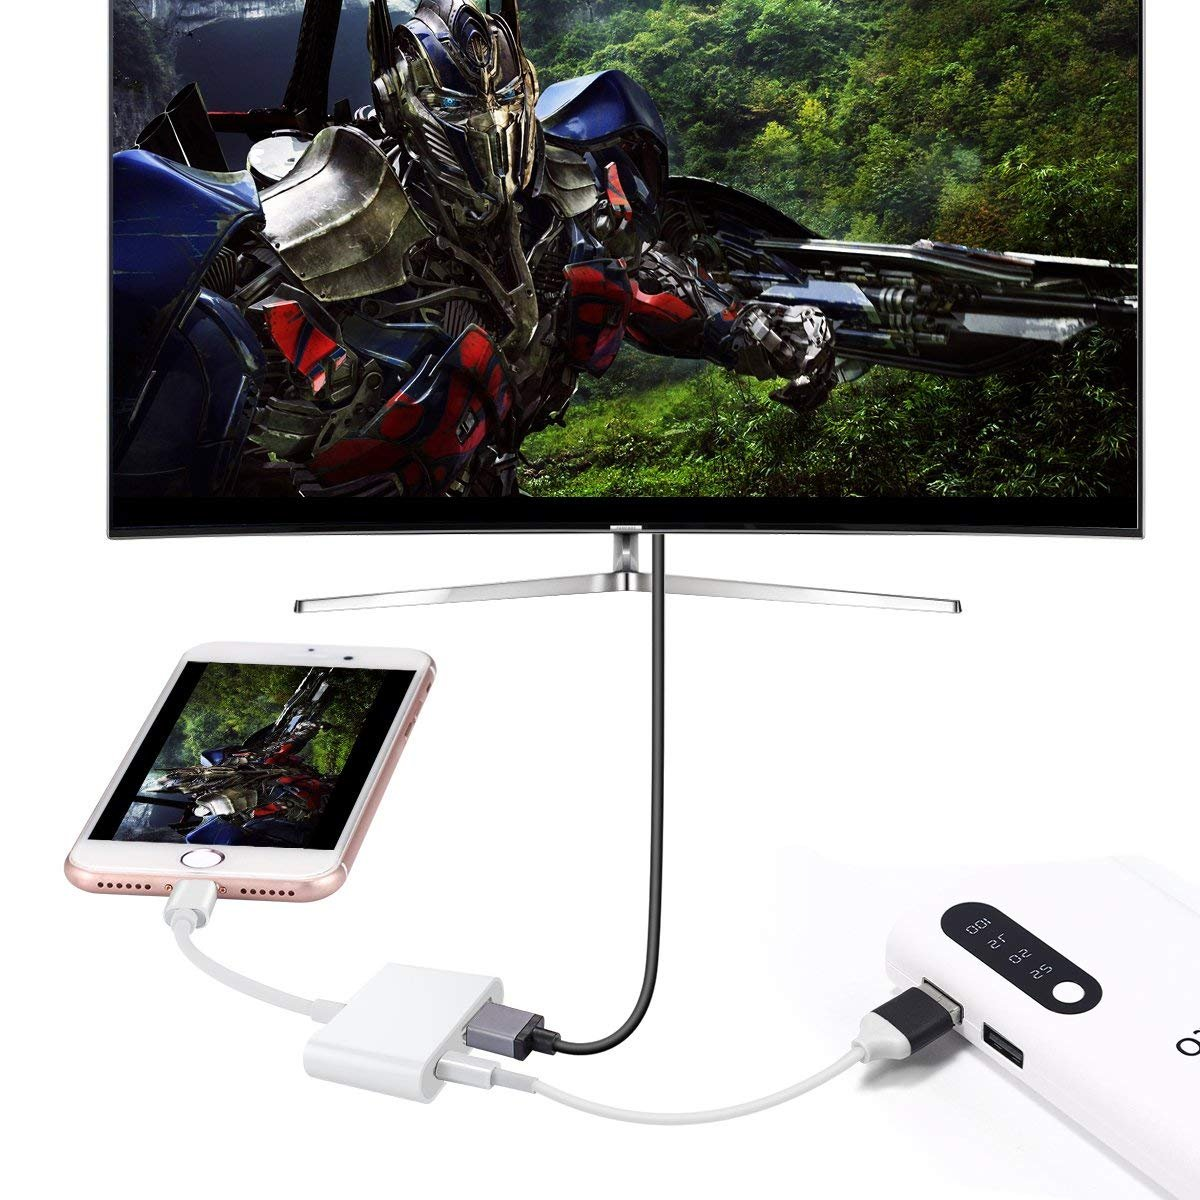 for HD TV Monitor Projector 1080P Must Supply Power Lighting Digital AV Adapter with Phone Charging Port 01 Lighting to HDMI Adapter Compatible with Phone//iPad//iPod Touch